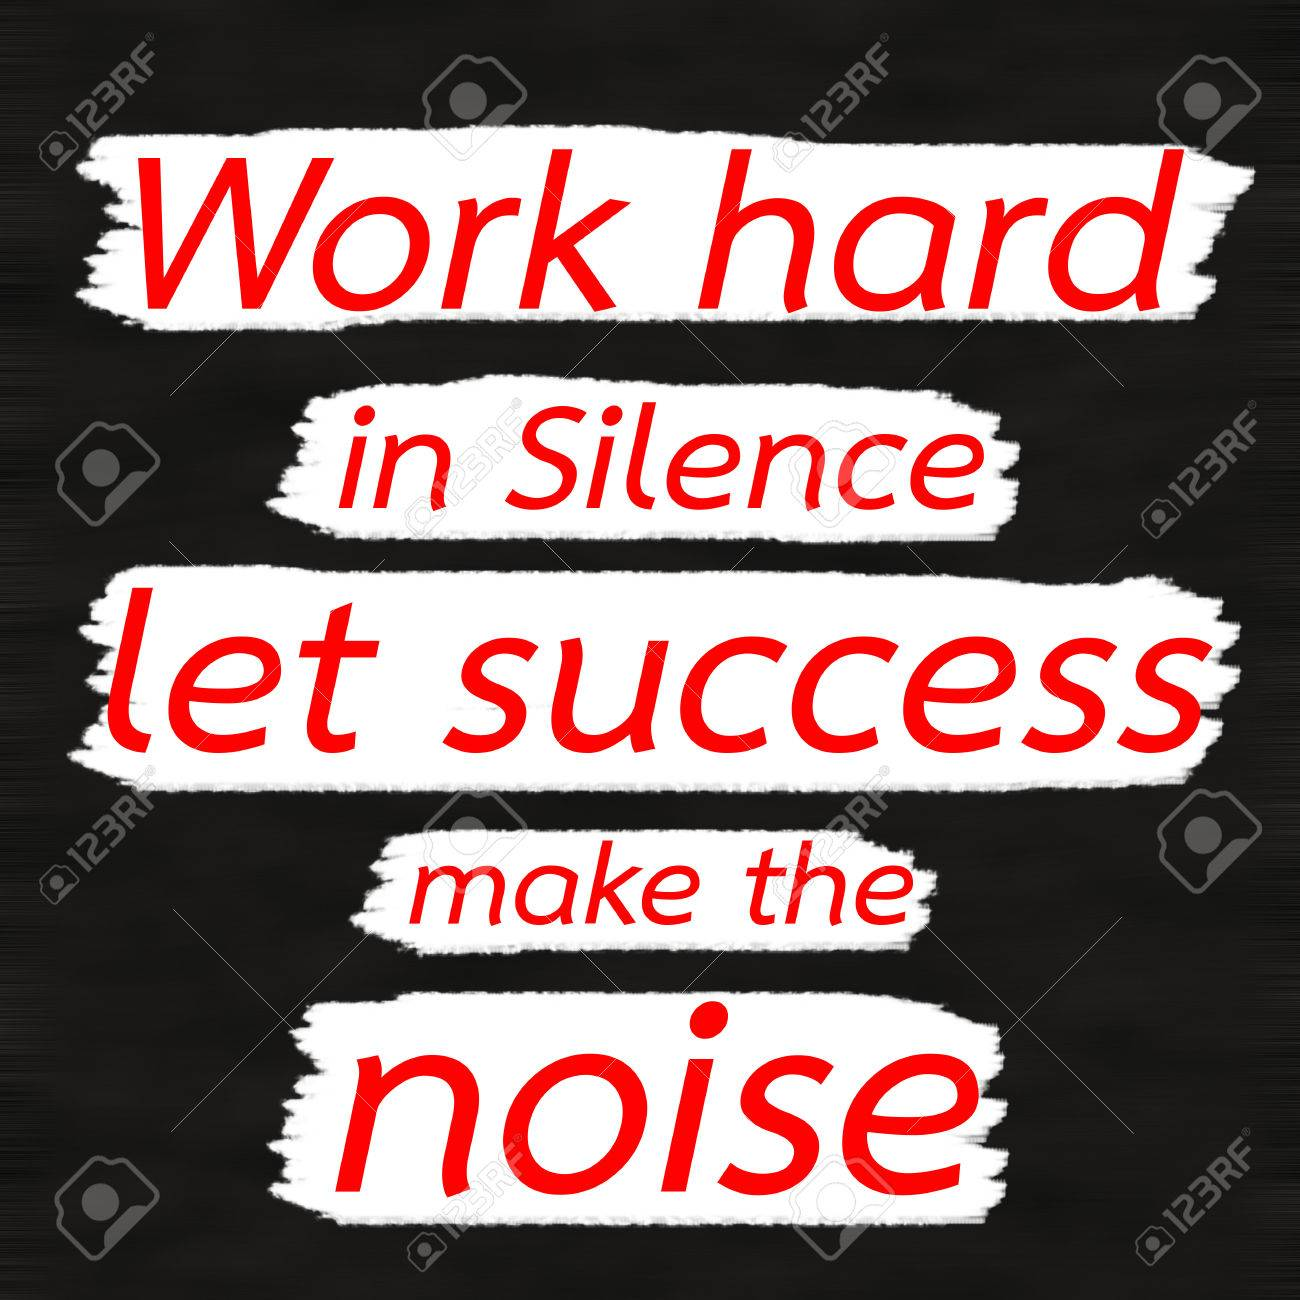 bfa383df066b Stock Photo - Work hard in Silence let success make the noise.Creative  Inspiring Motivation Quote Concept Red Word On Black wood Background.